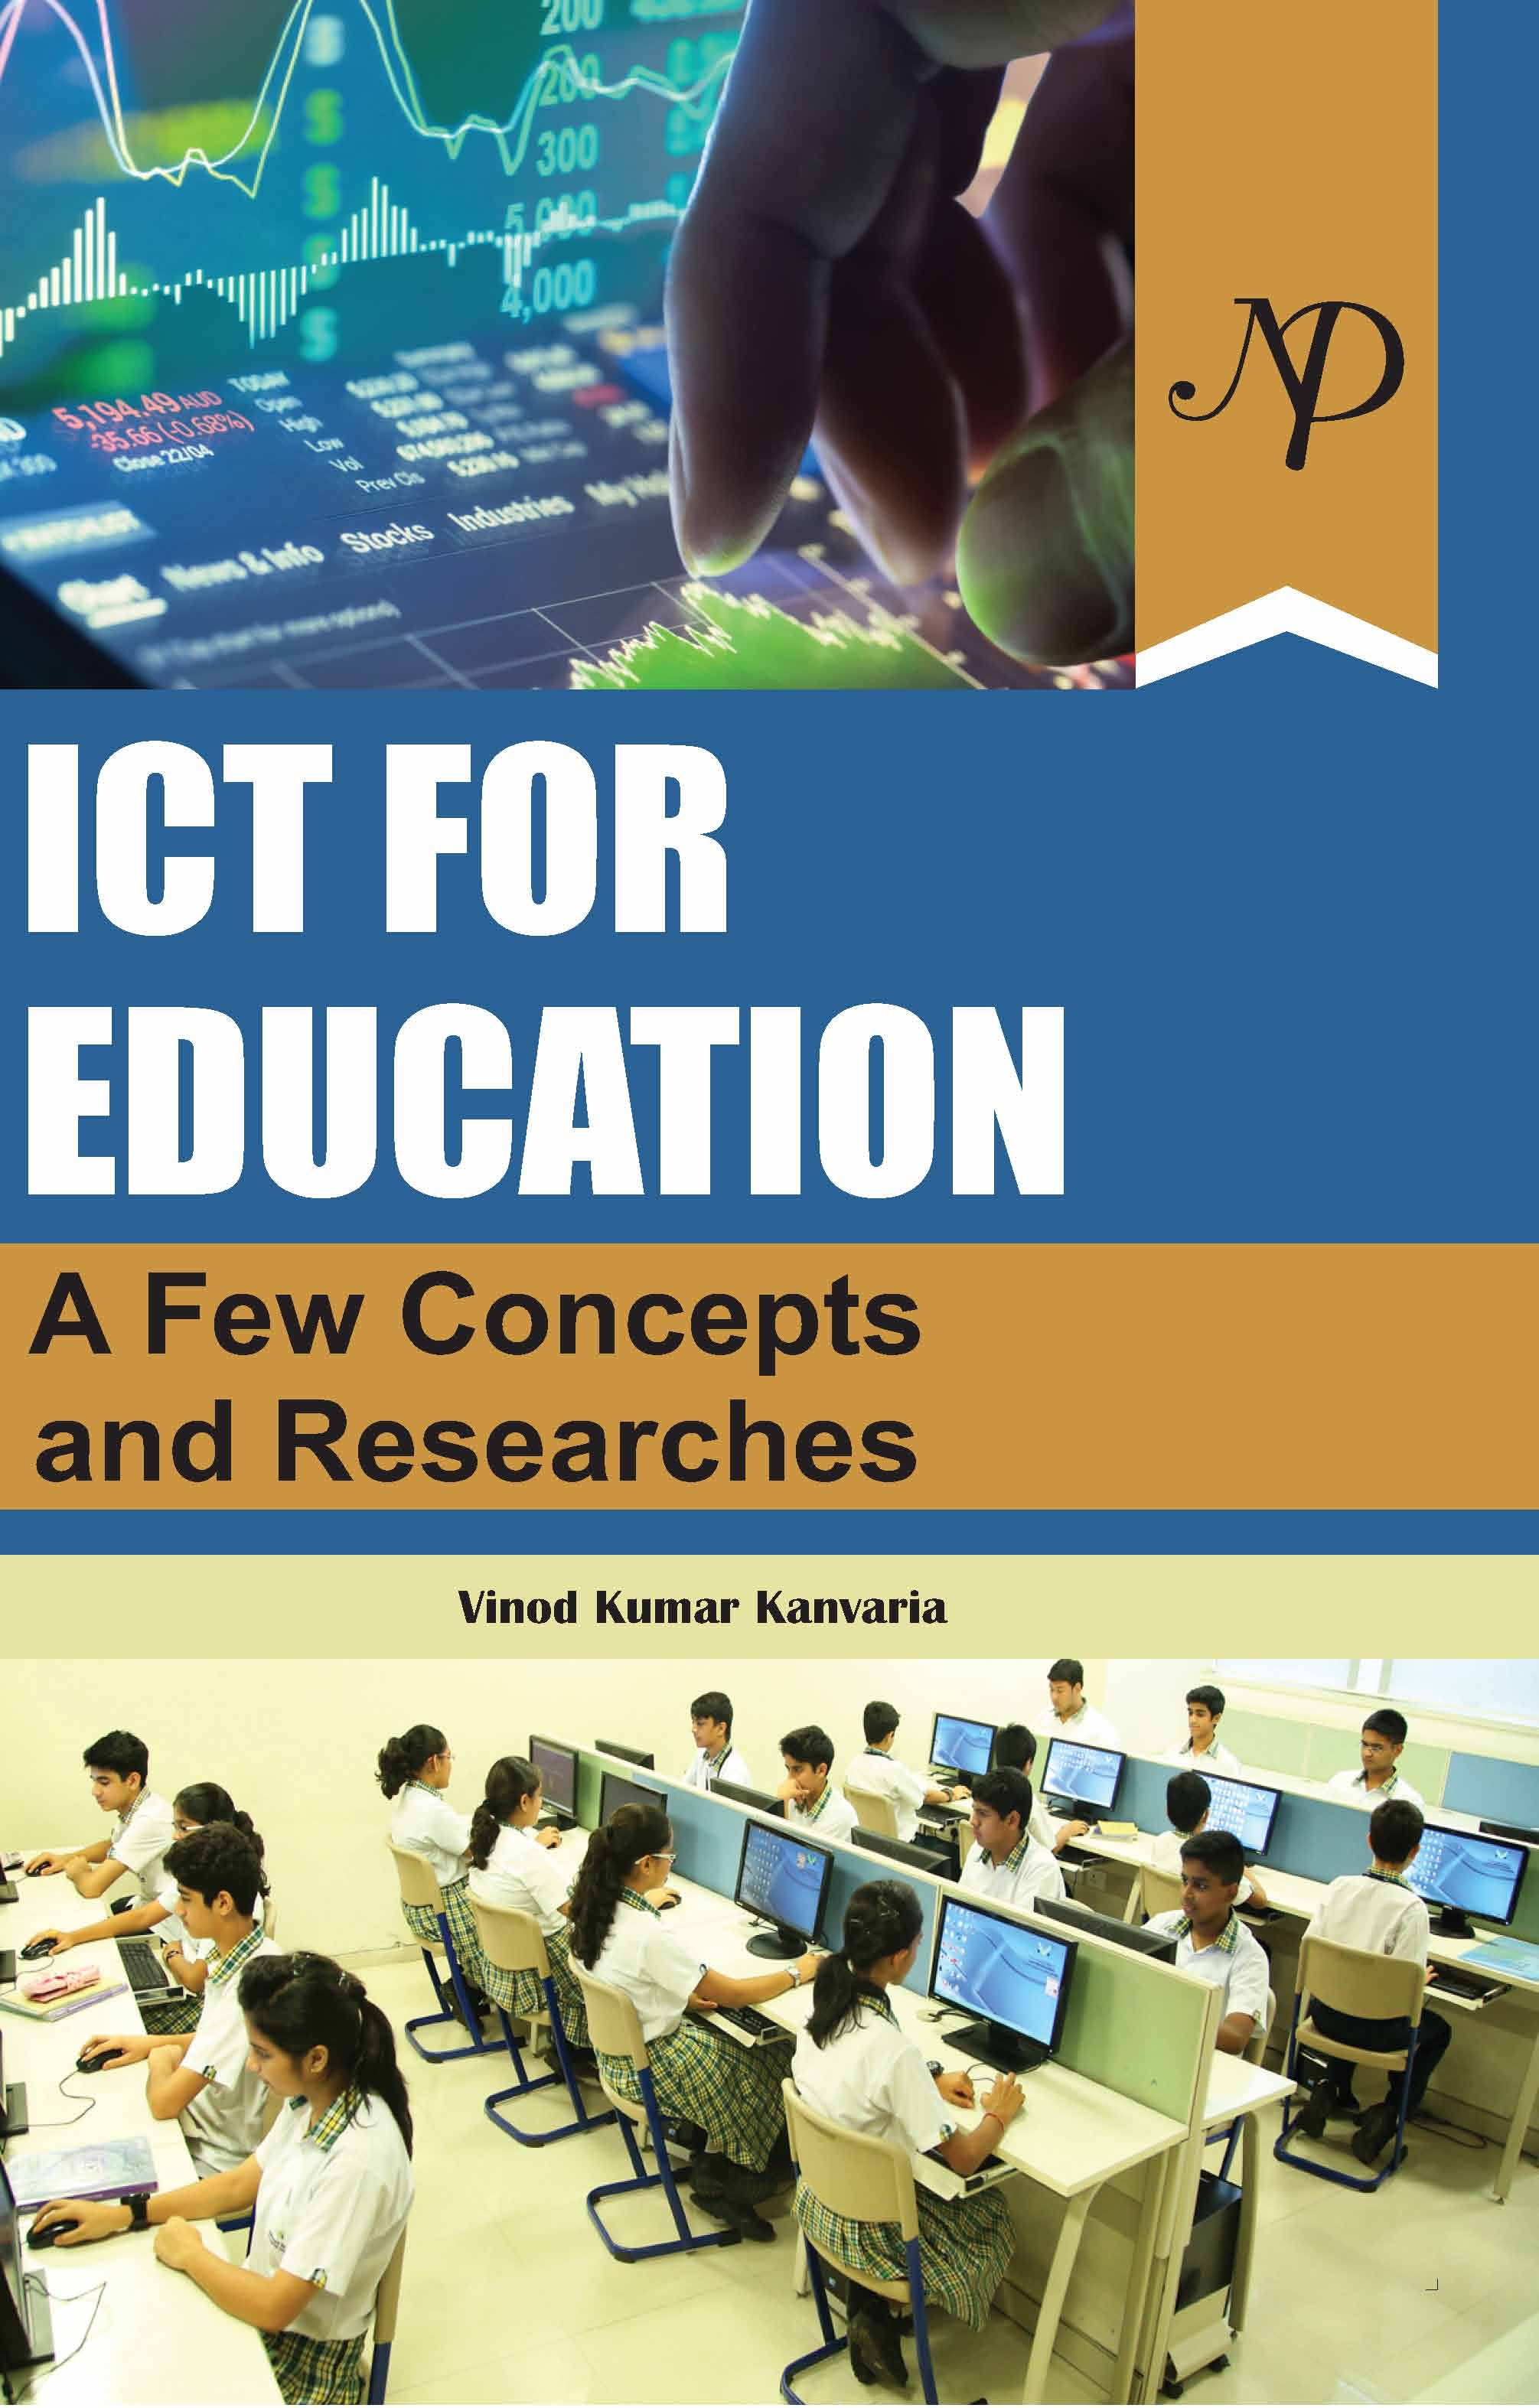 ICT for Education A Few Concepts and Researches